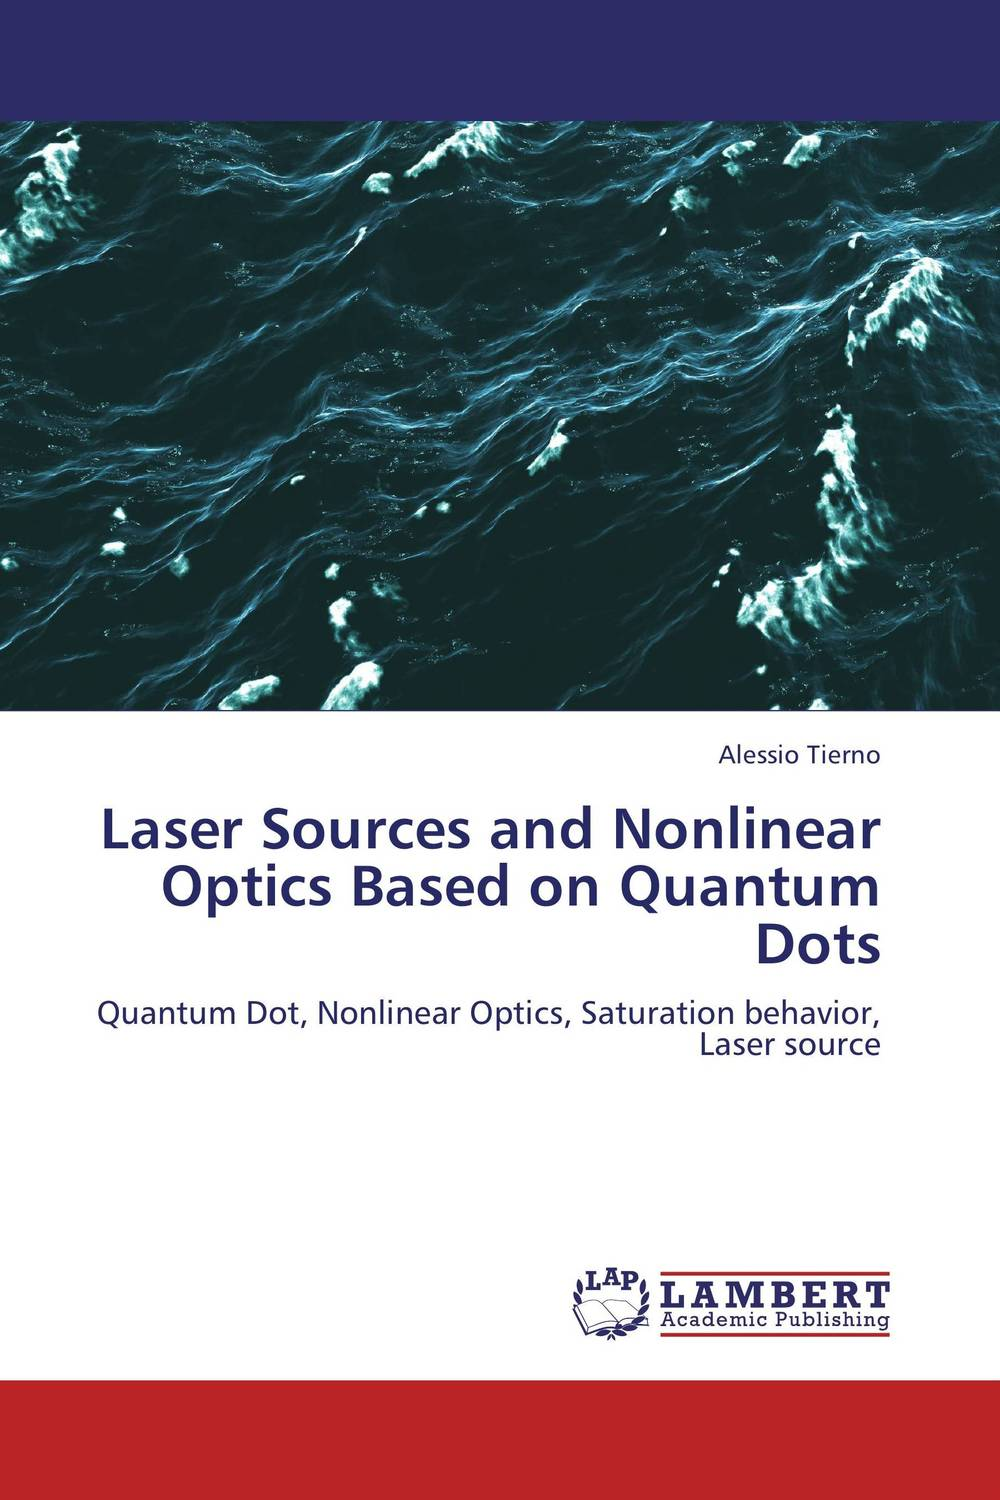 цены Laser Sources and Nonlinear Optics Based on Quantum Dots